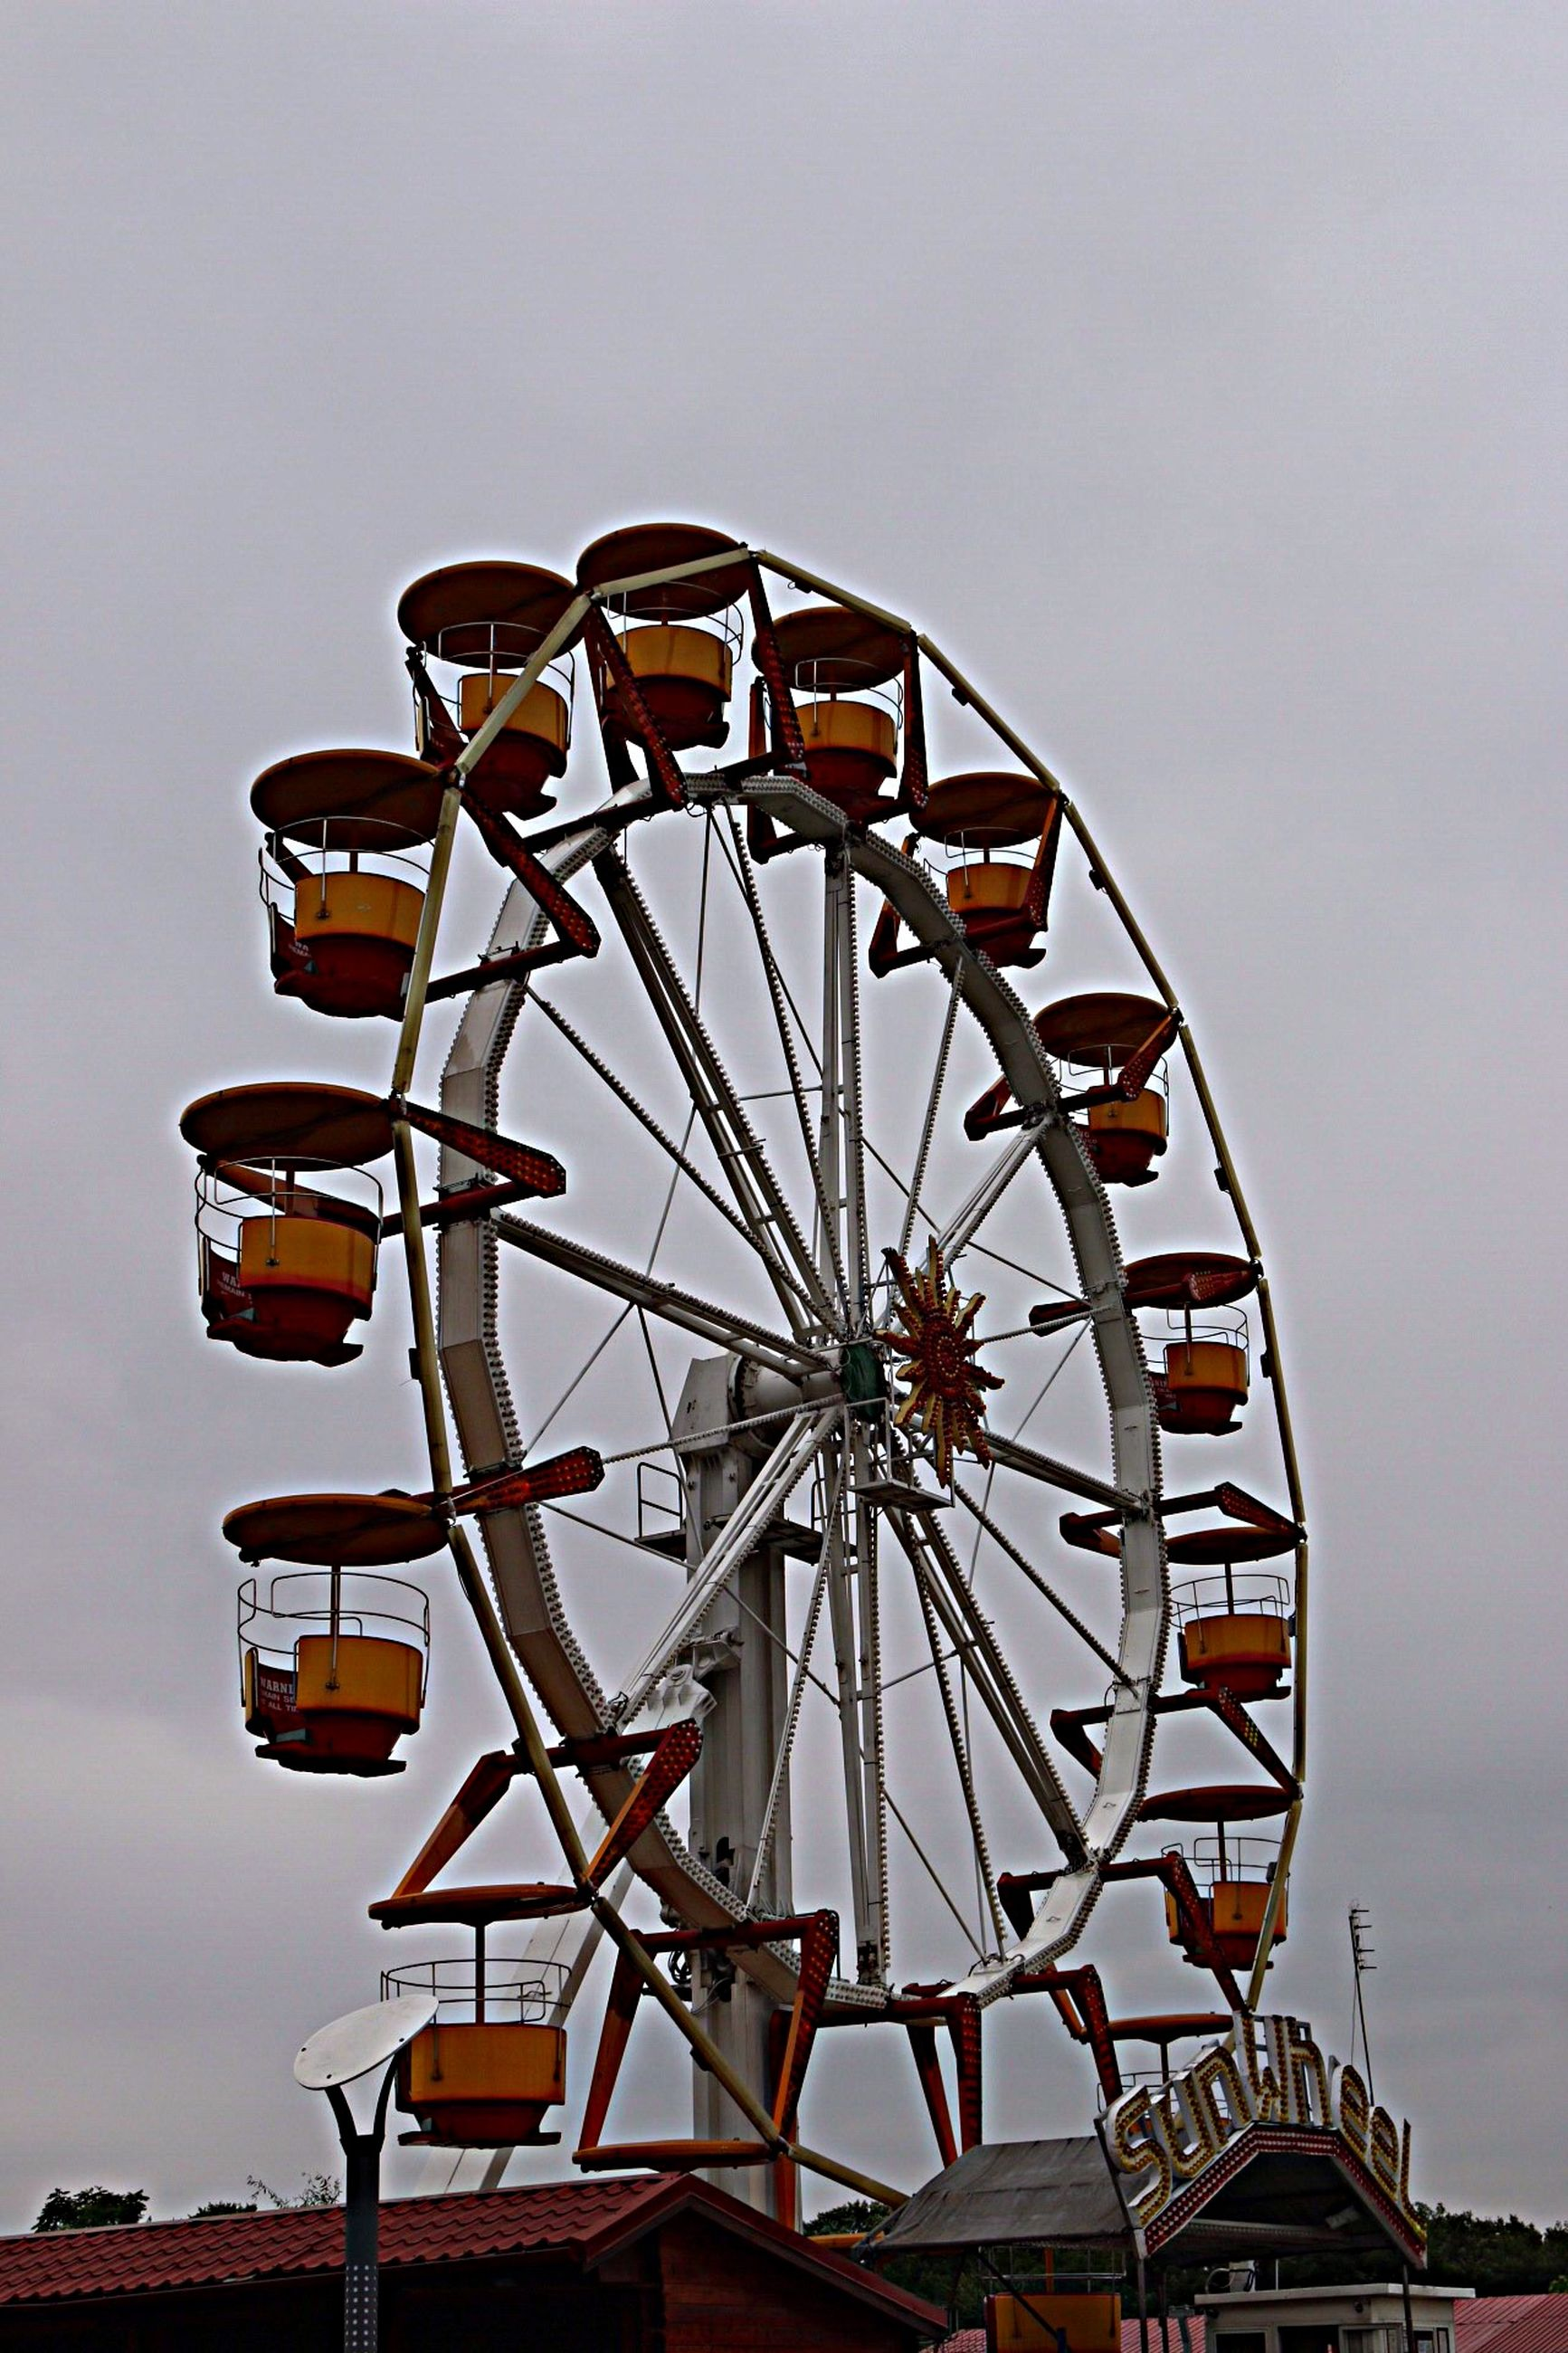 ferris wheel, amusement park, amusement park ride, arts culture and entertainment, low angle view, sky, built structure, architecture, circle, clear sky, wheel, day, outdoors, silhouette, large, cloud - sky, no people, metal, copy space, rollercoaster